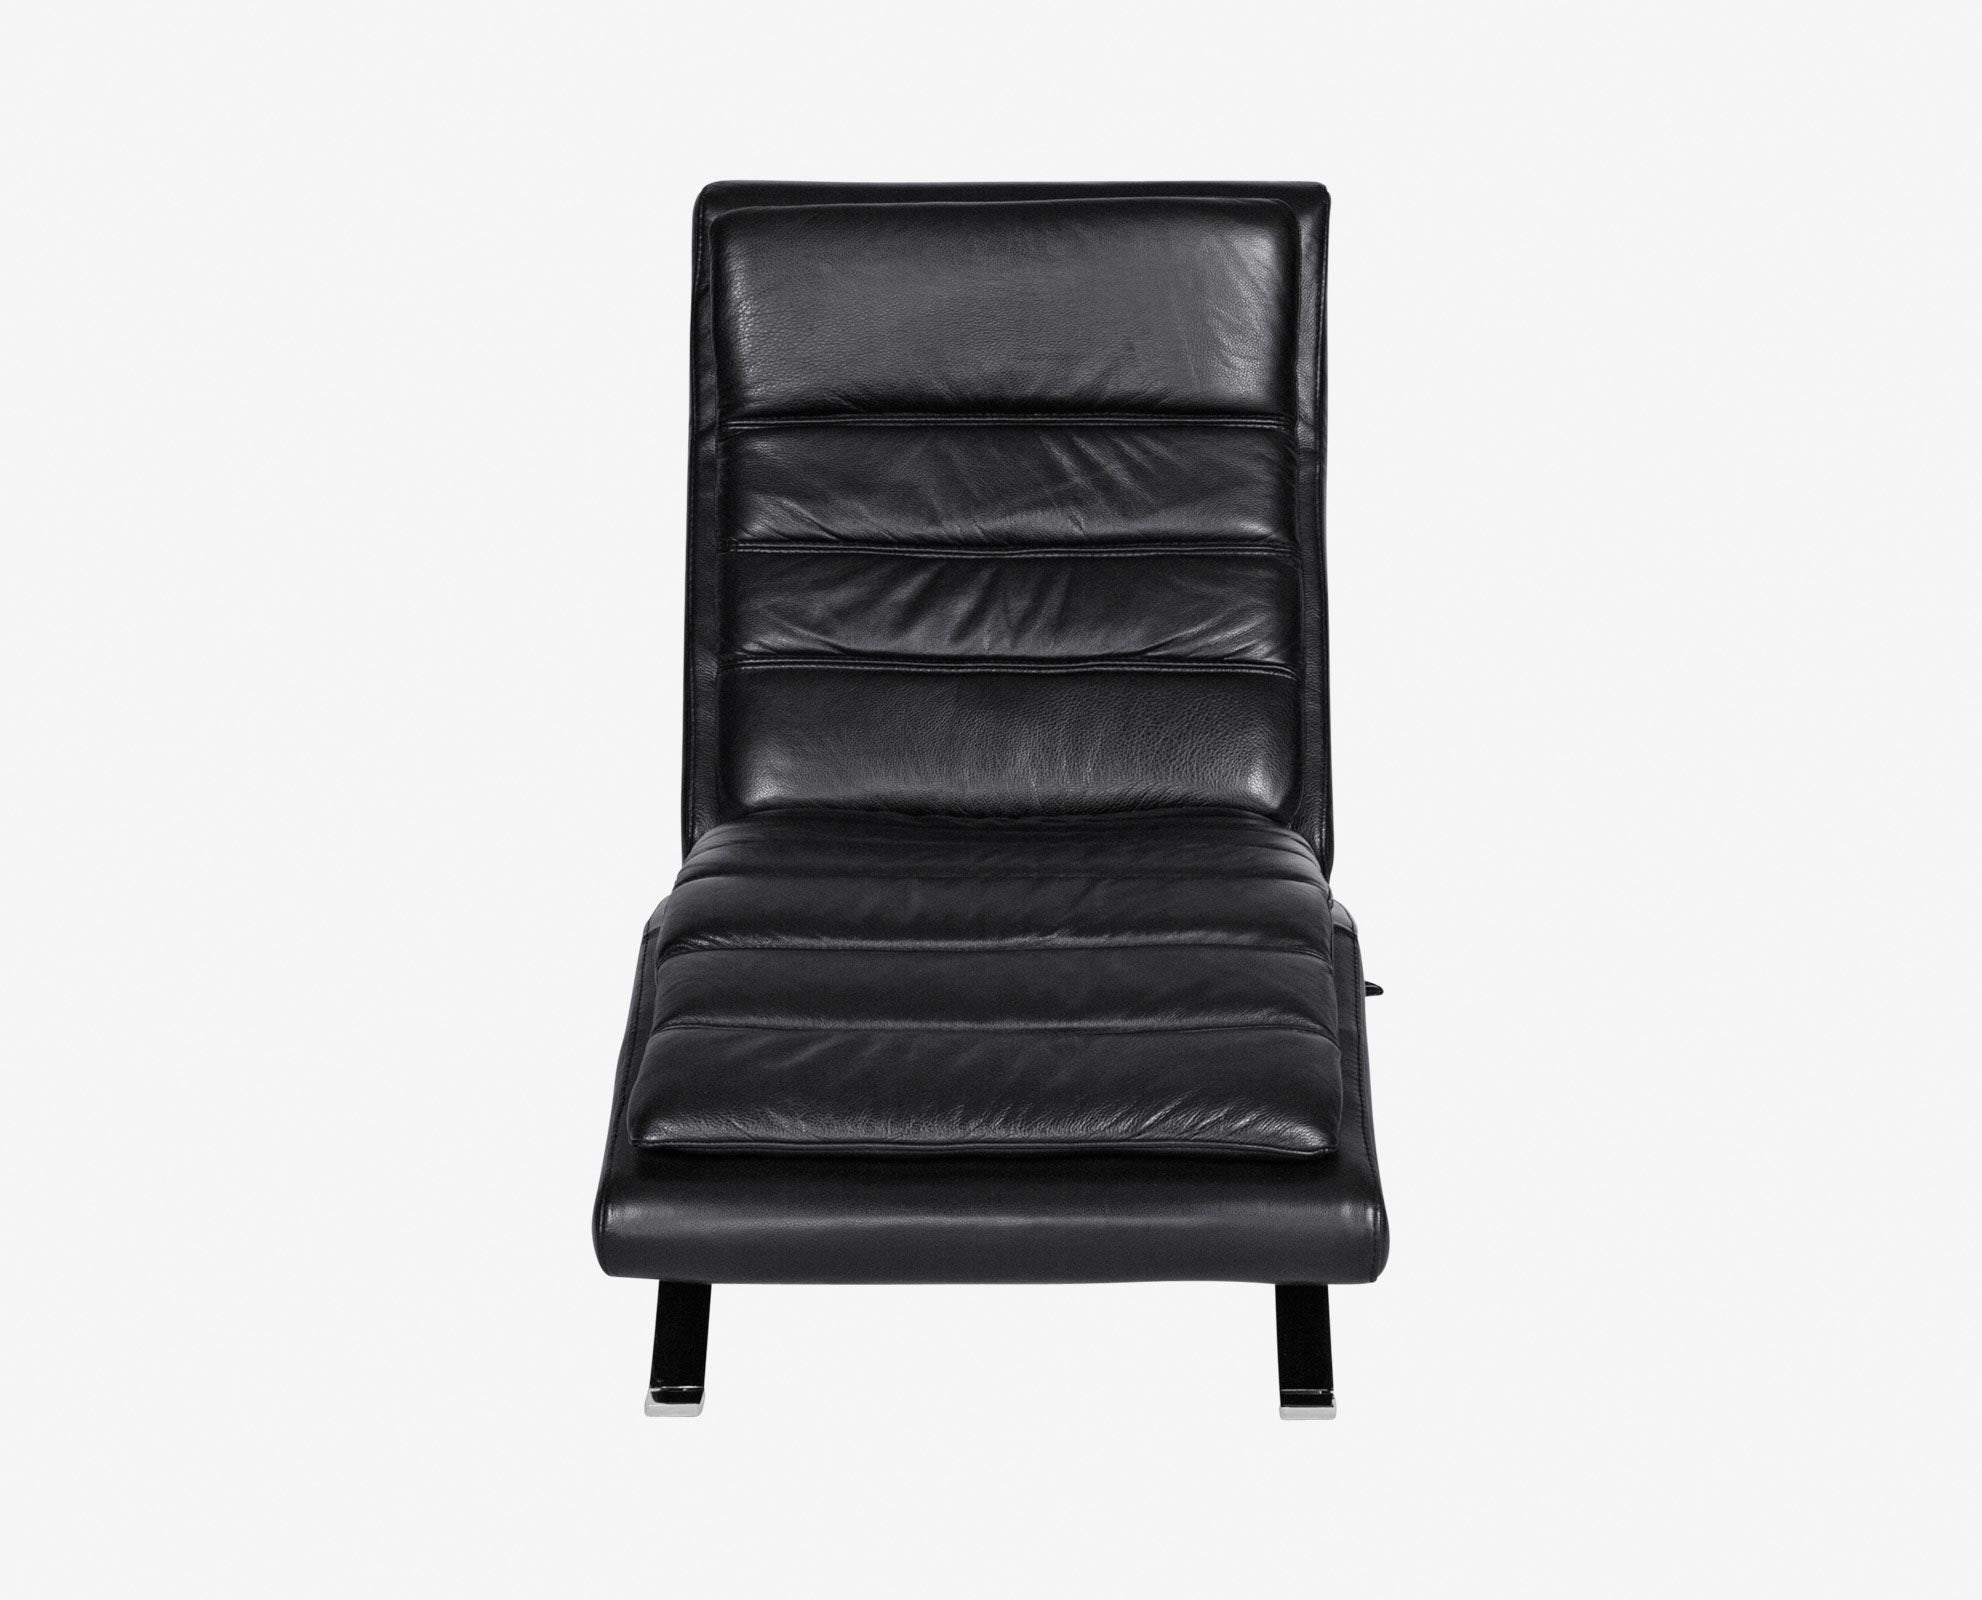 Cushioned luxury black leather recliner chair